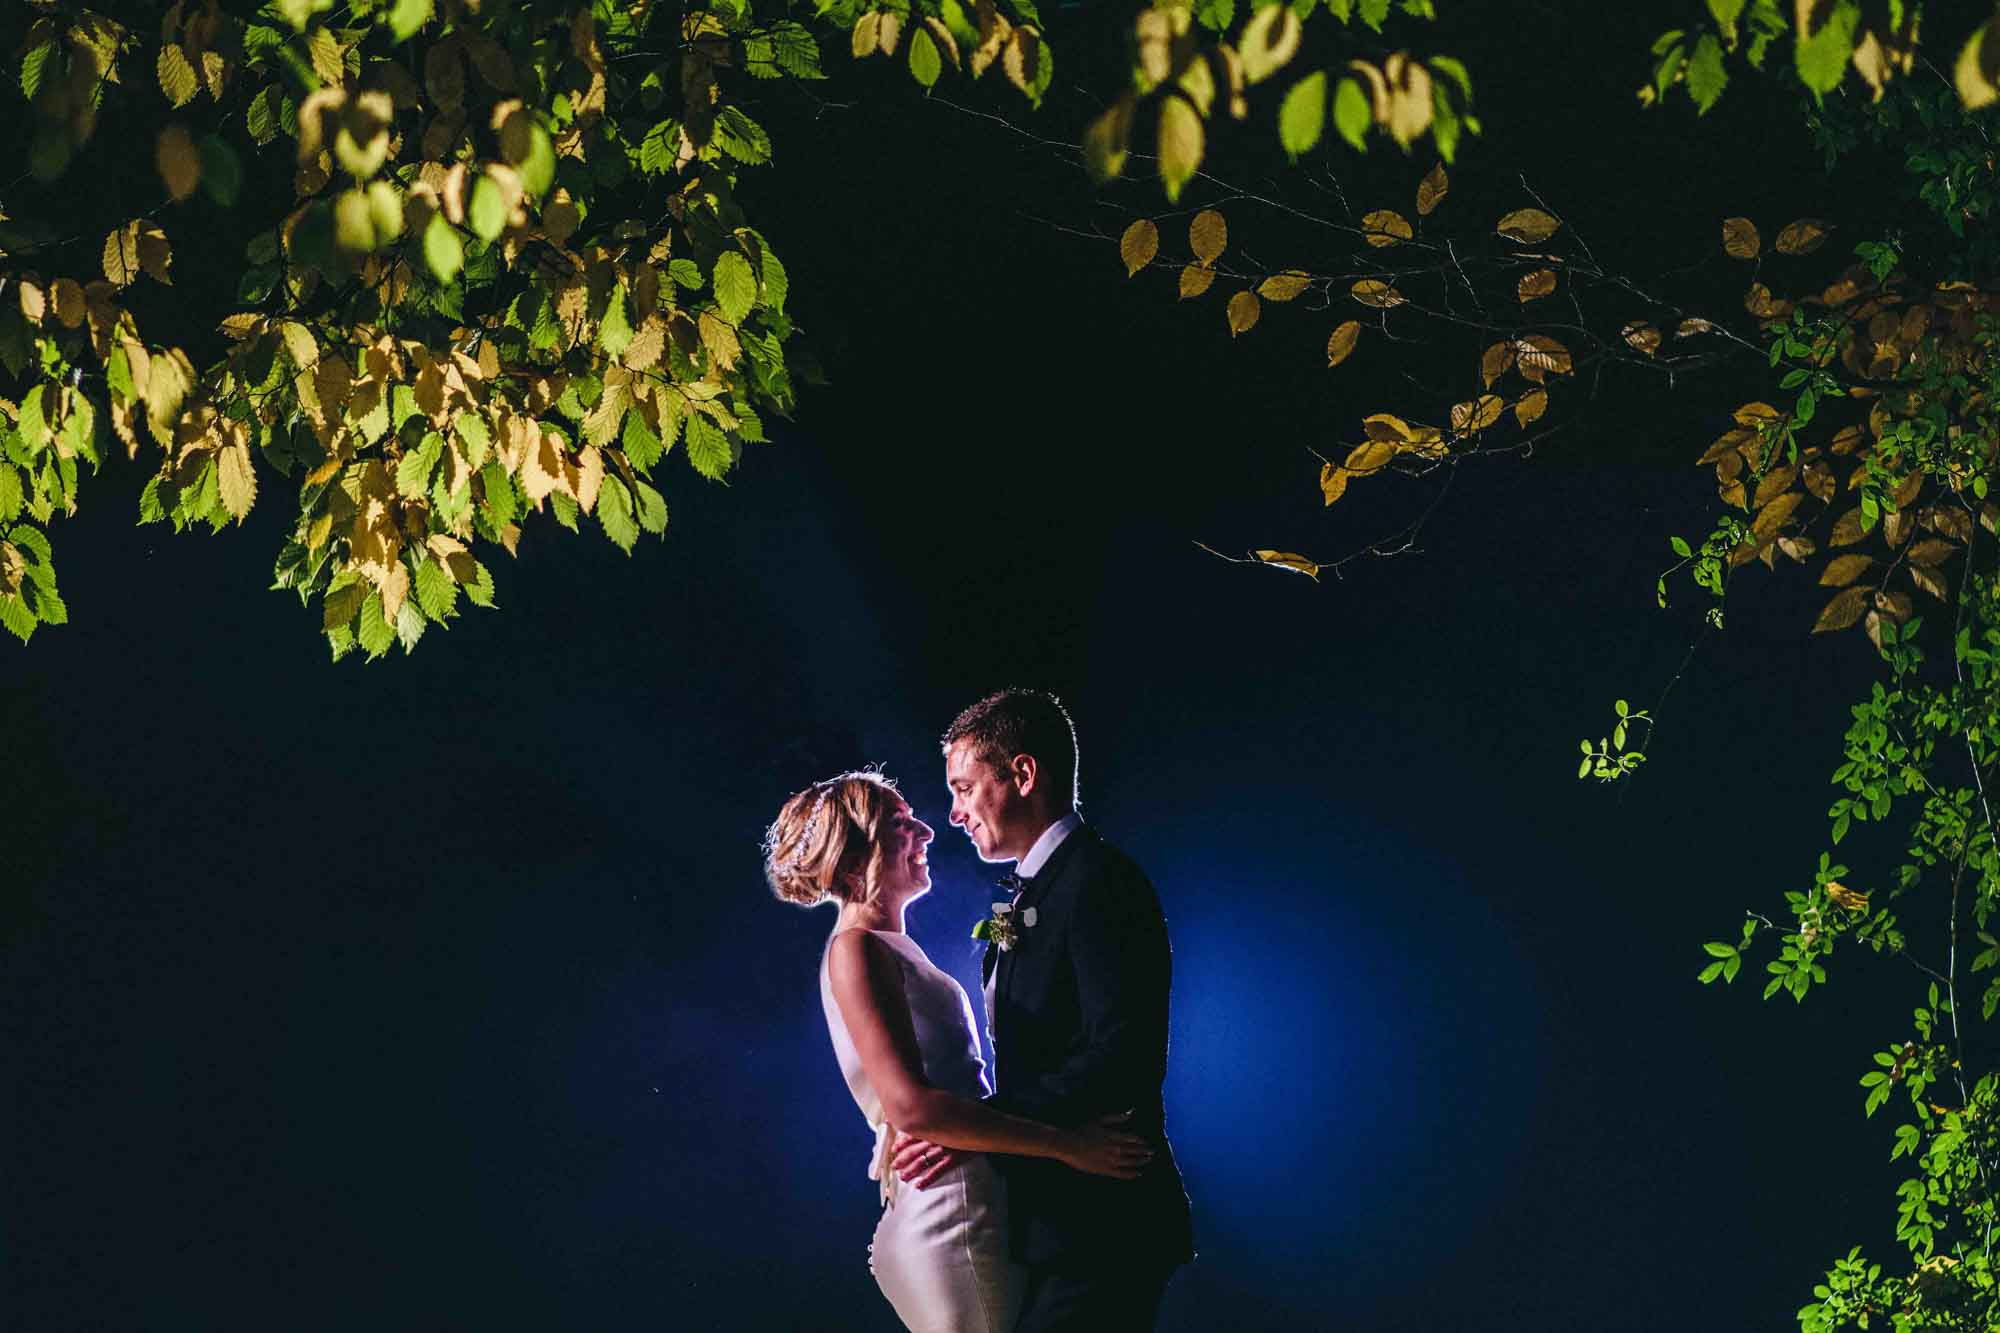 Photo in the dark at Cripps Barn Wedding Photo